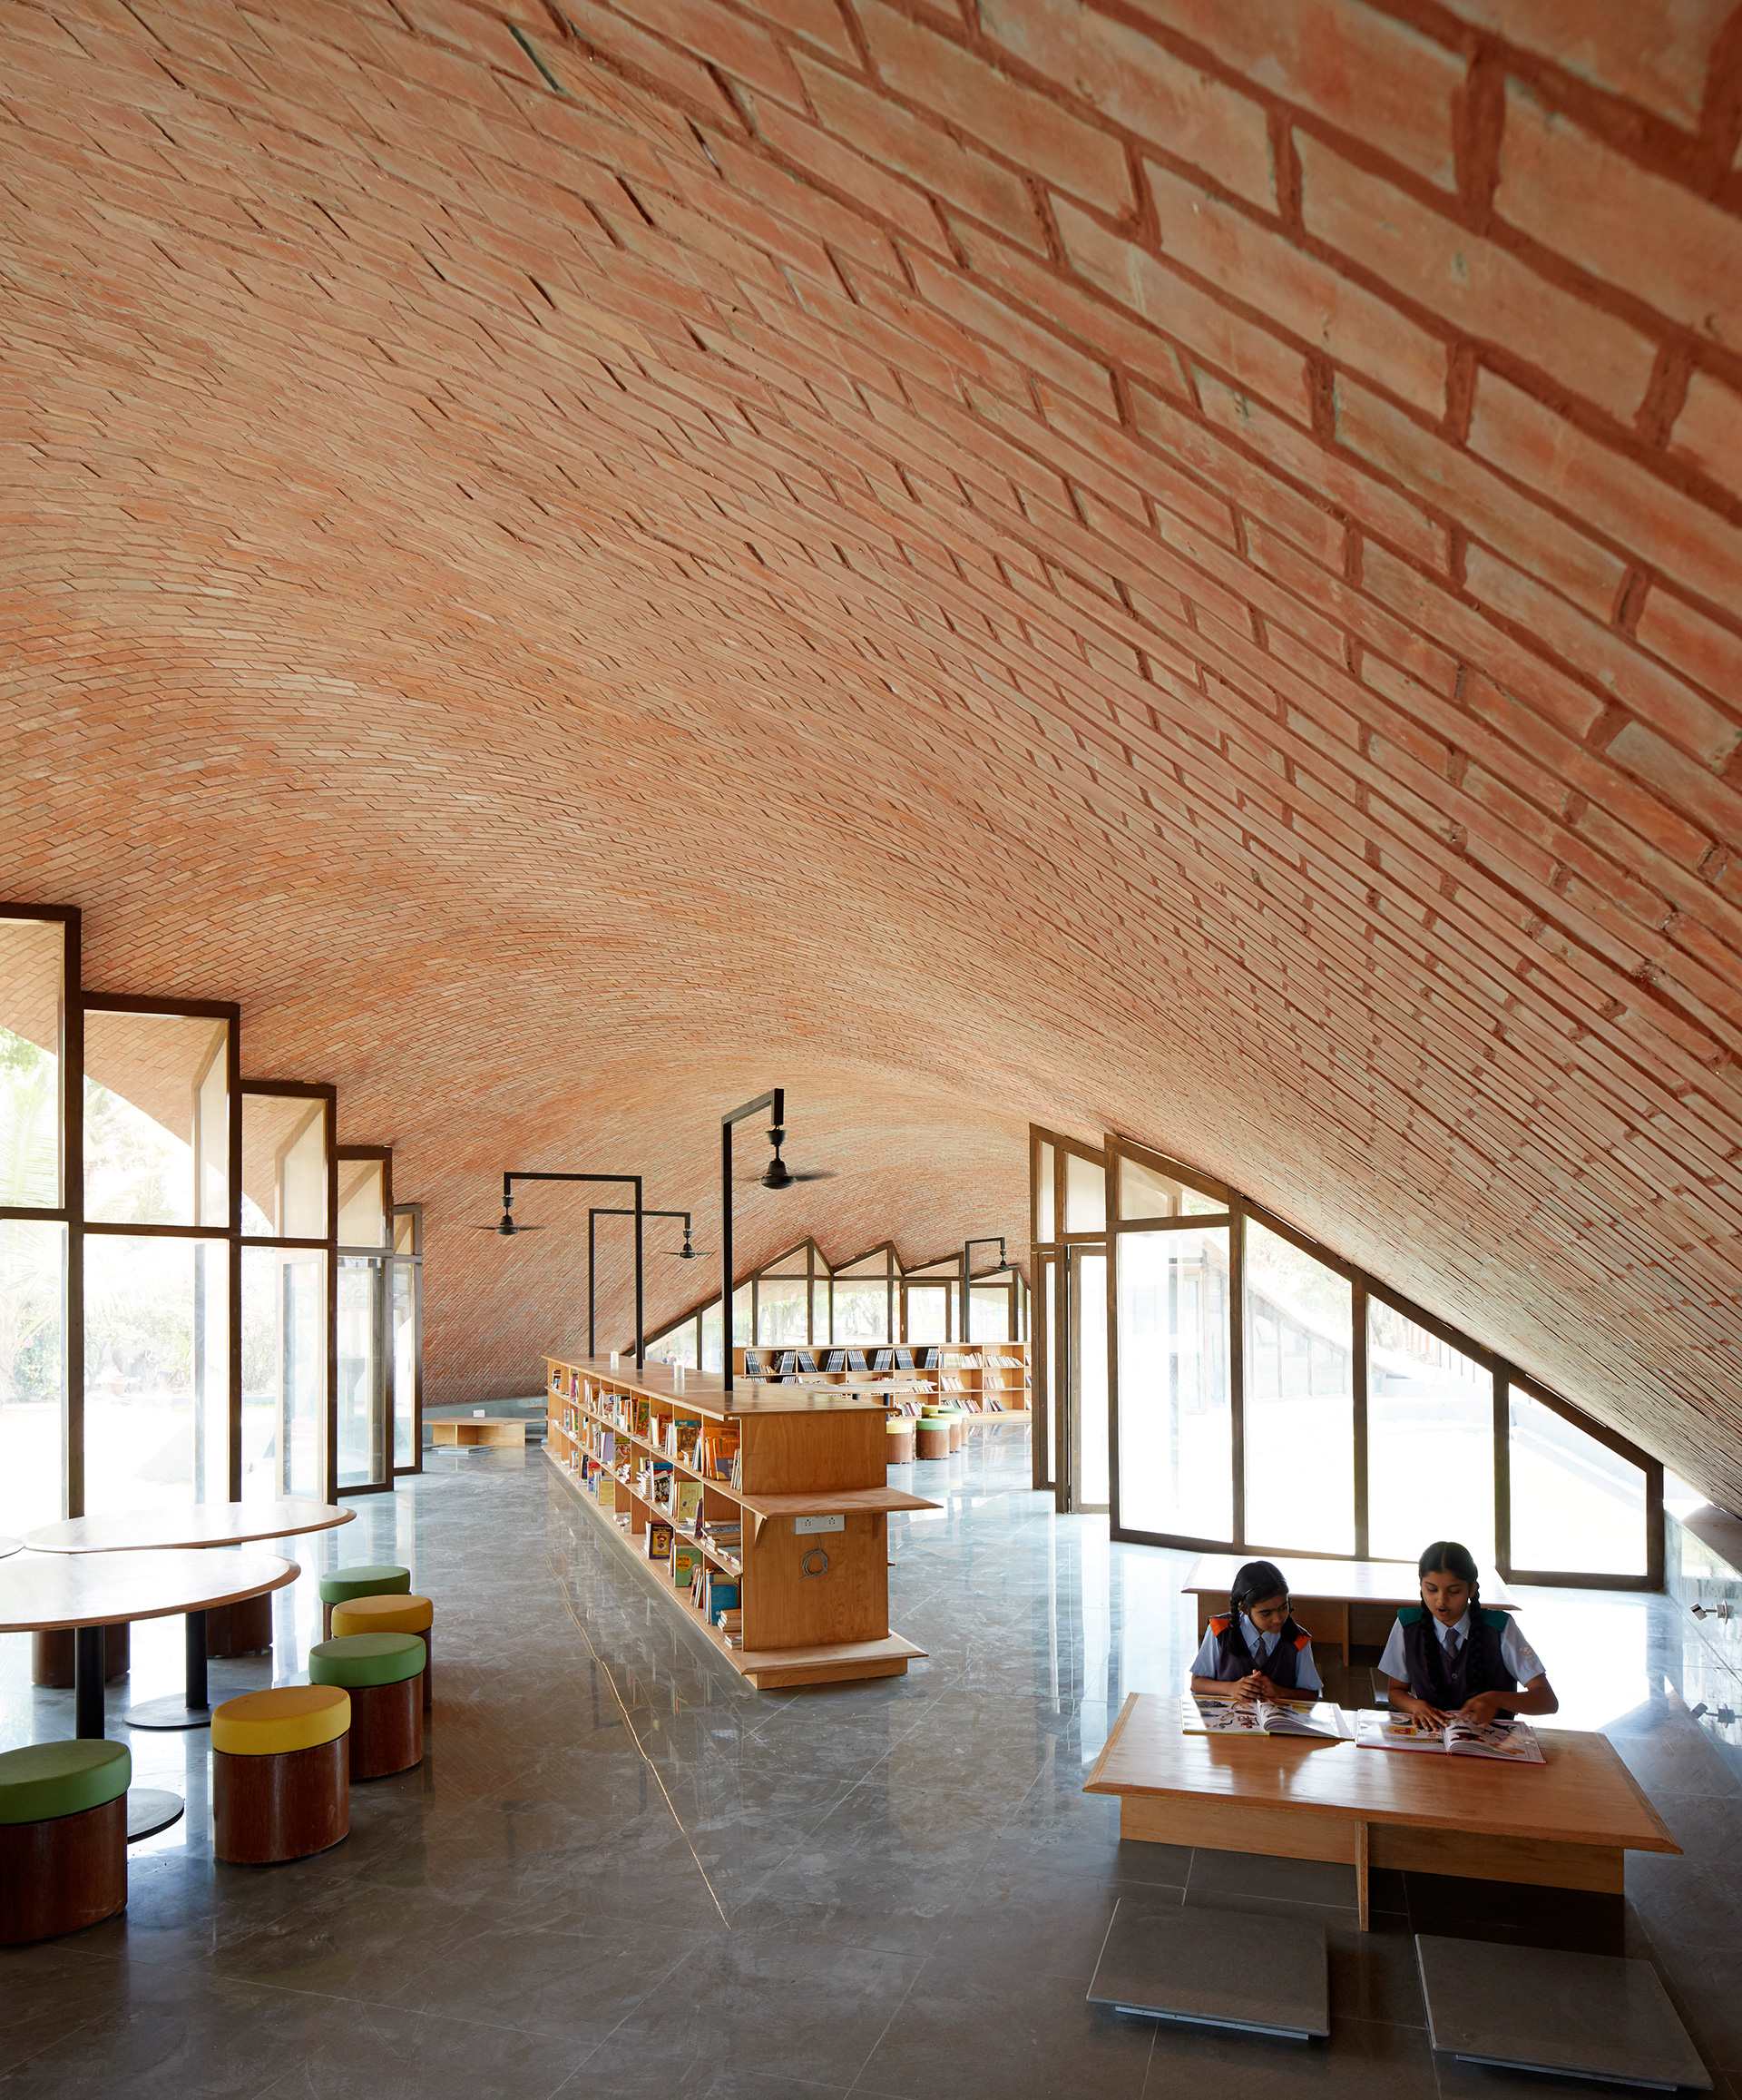 Corners form intimate reading spaces | Maya Somaiya Library | sP+a | STIRworld